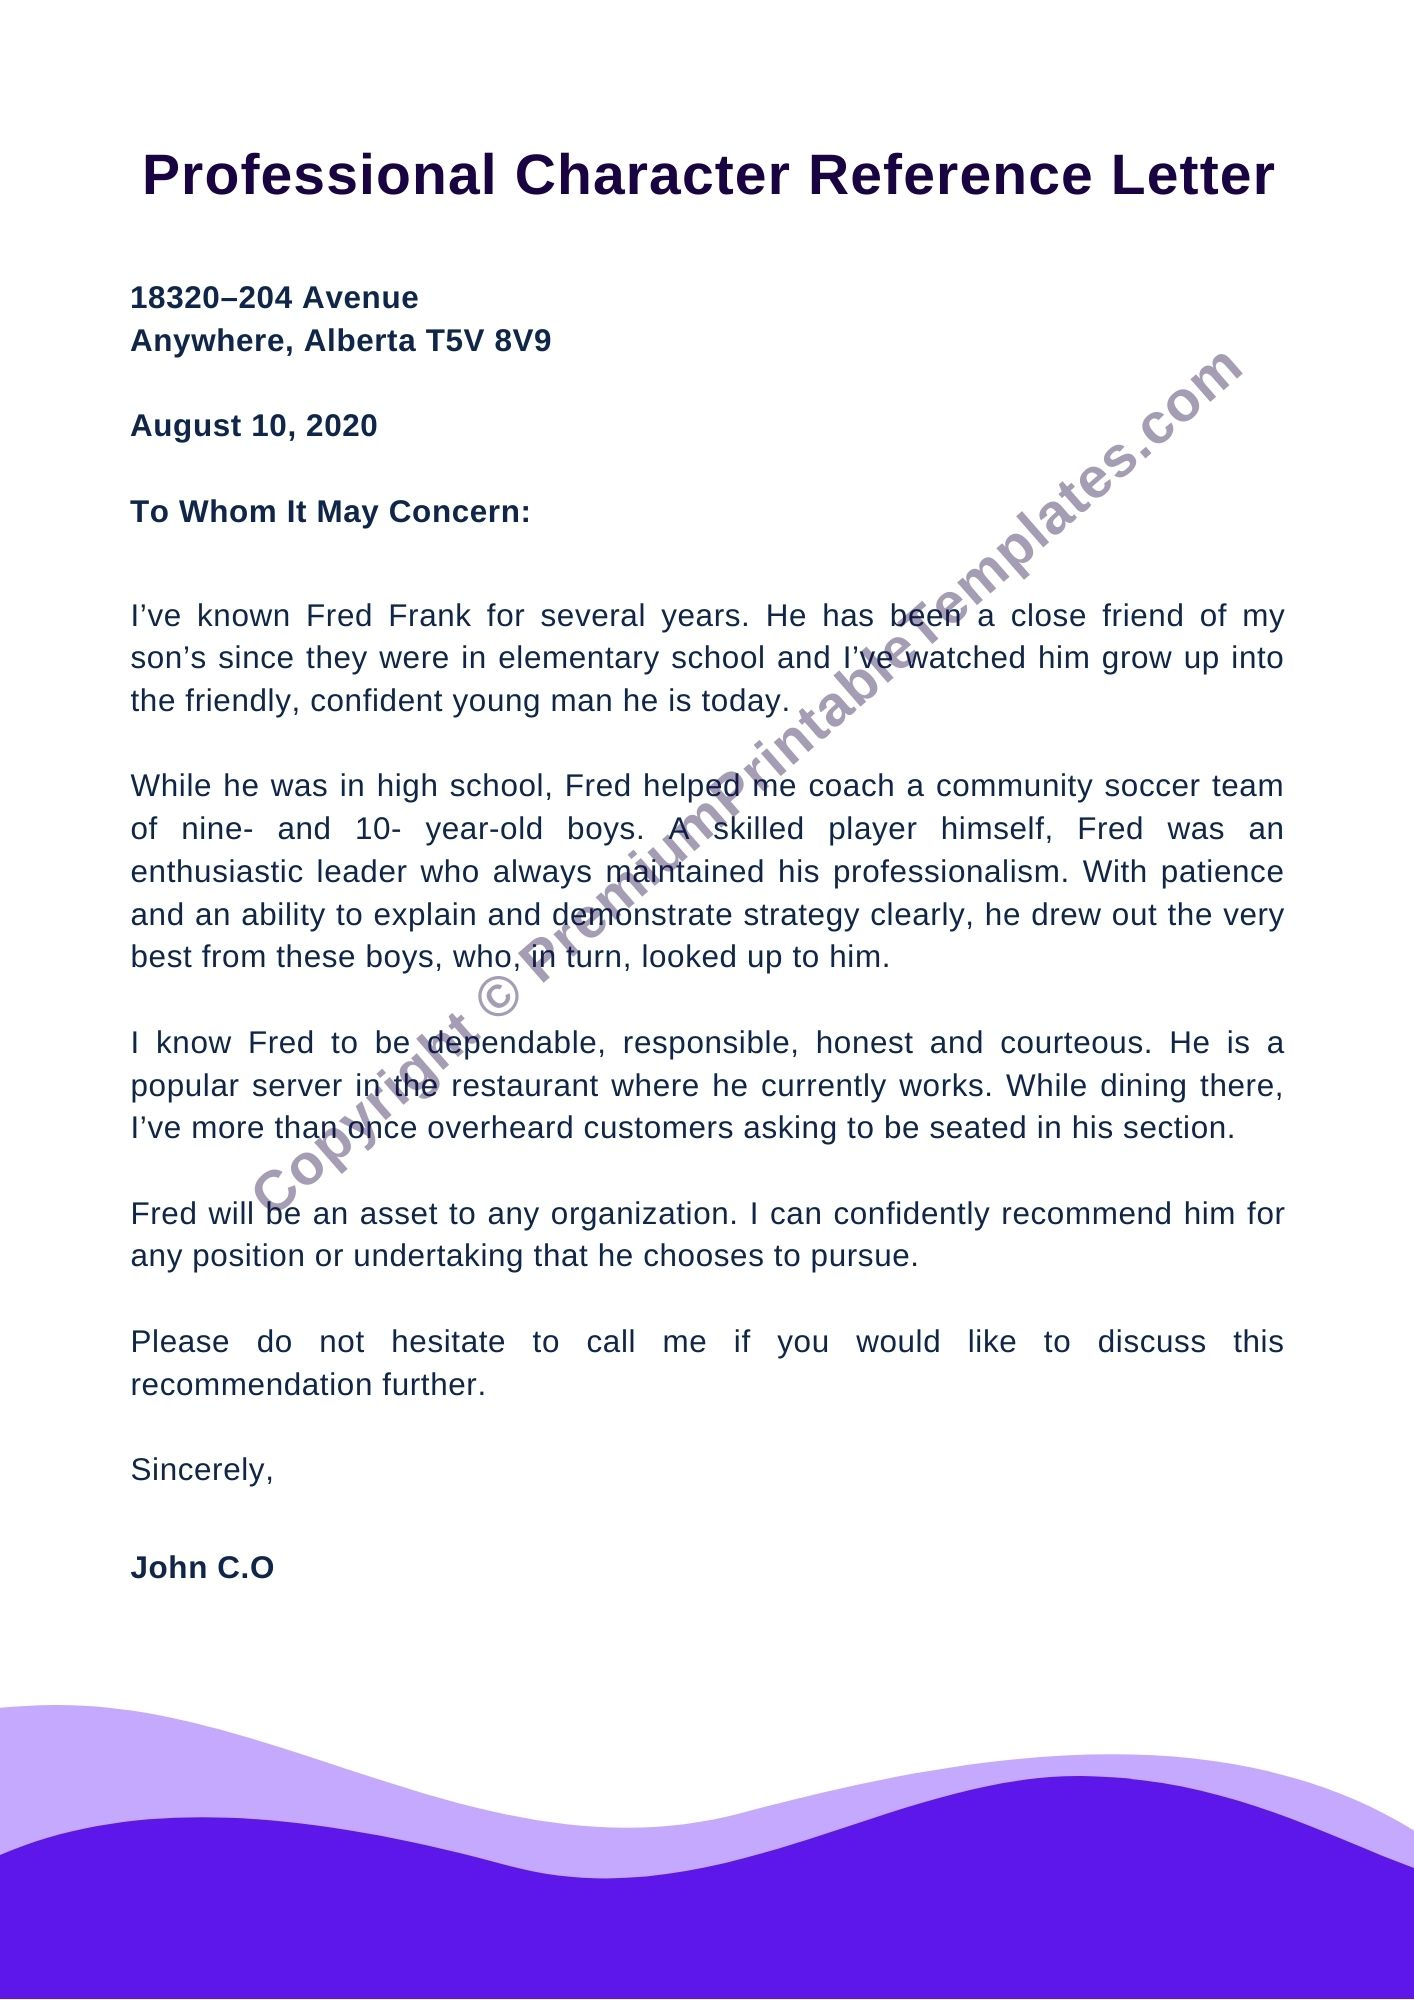 Character Reference Letter For Landlord from premiumprintabletemplates.com